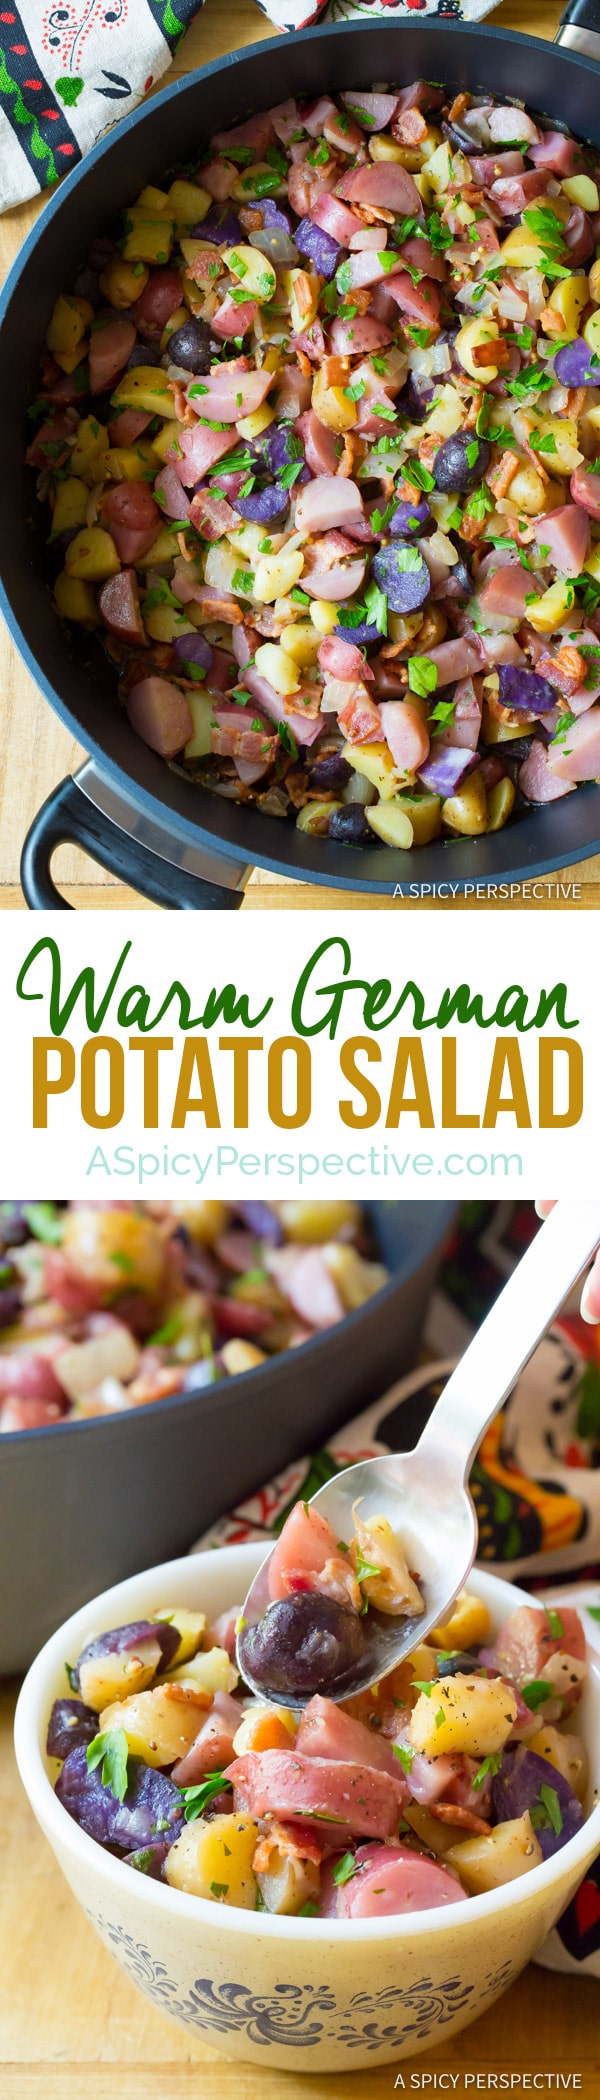 Warm German Potato Salad Recipe | ASpicyPerspective.com